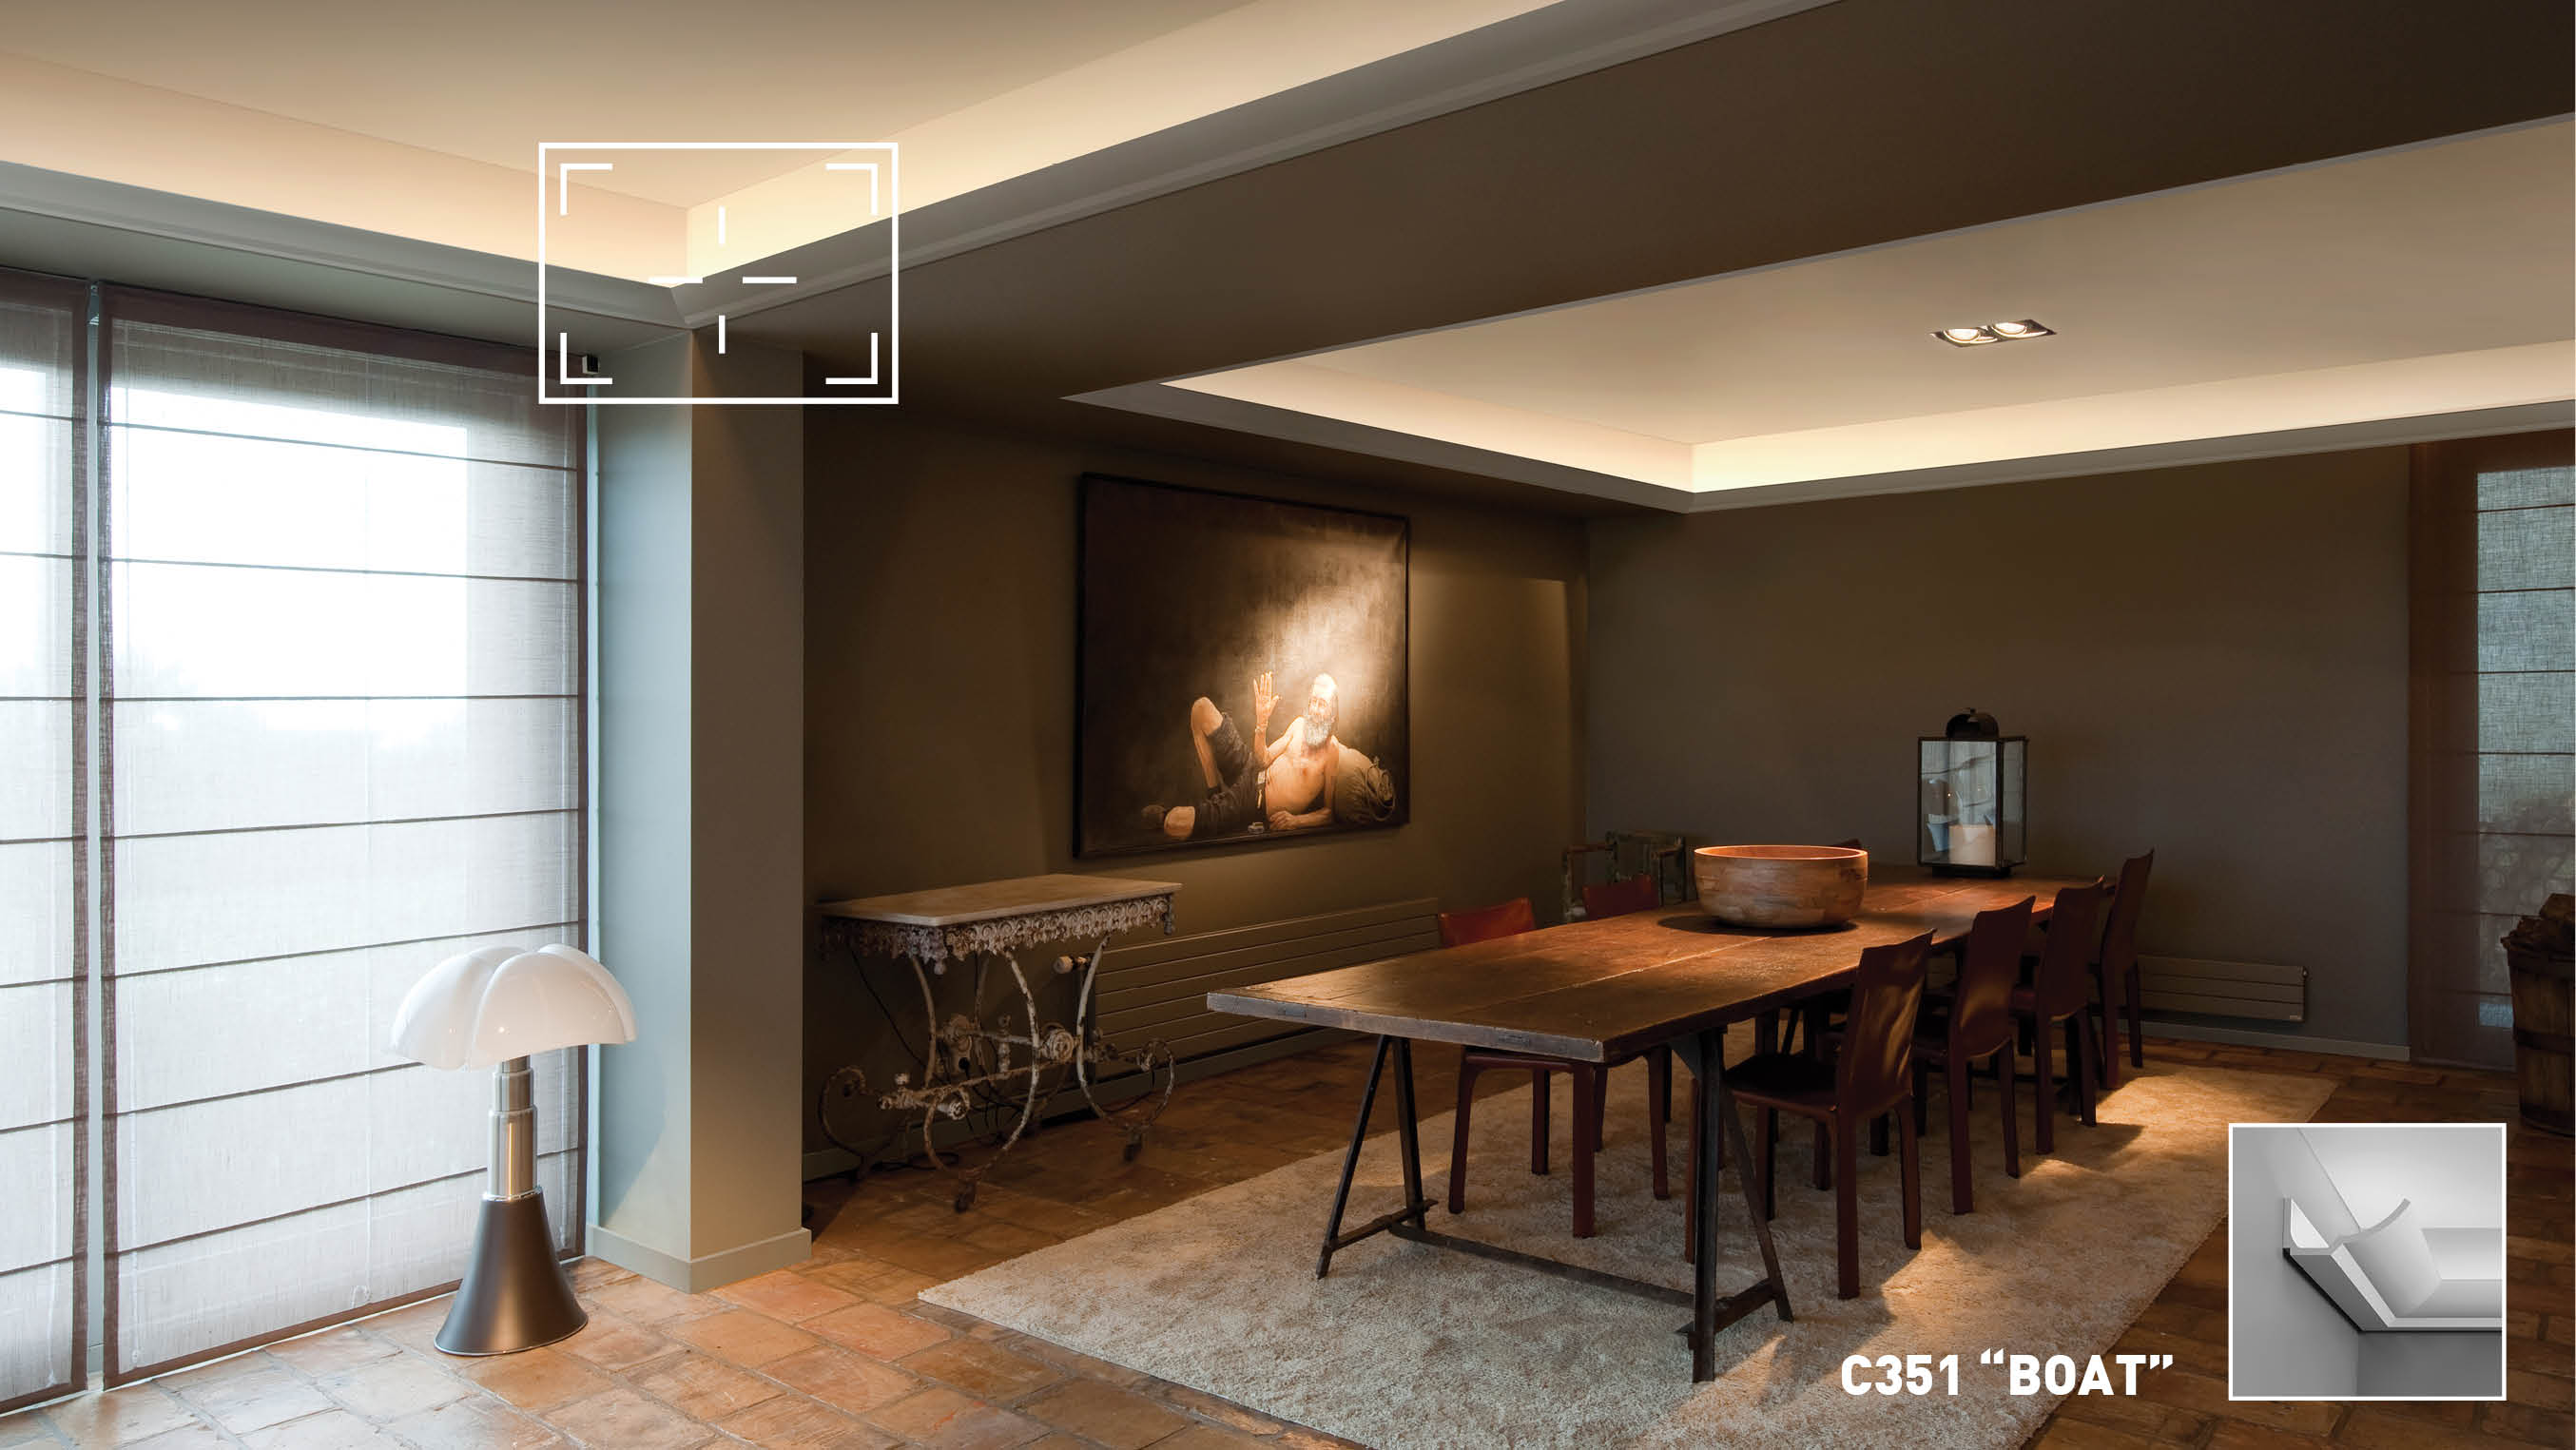 Indirect lighting from concealed ceiling led panels